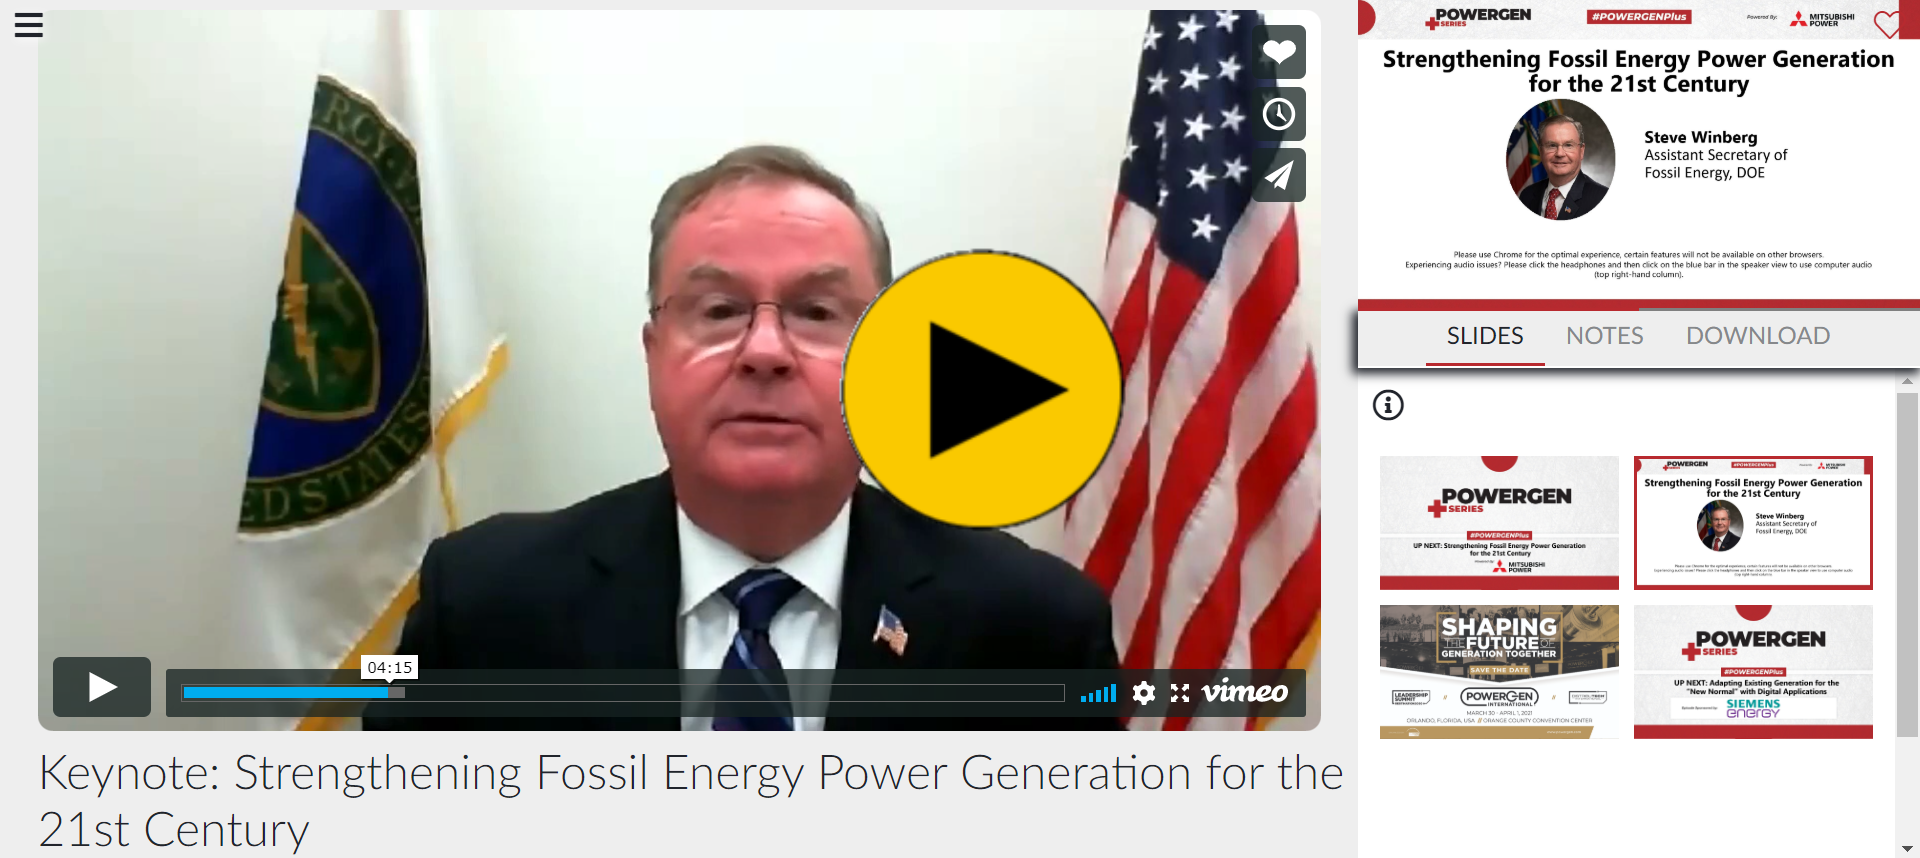 POWERGEN+ - Keynote: Strengthening Fossil Energy Power Generation for the 21st Century